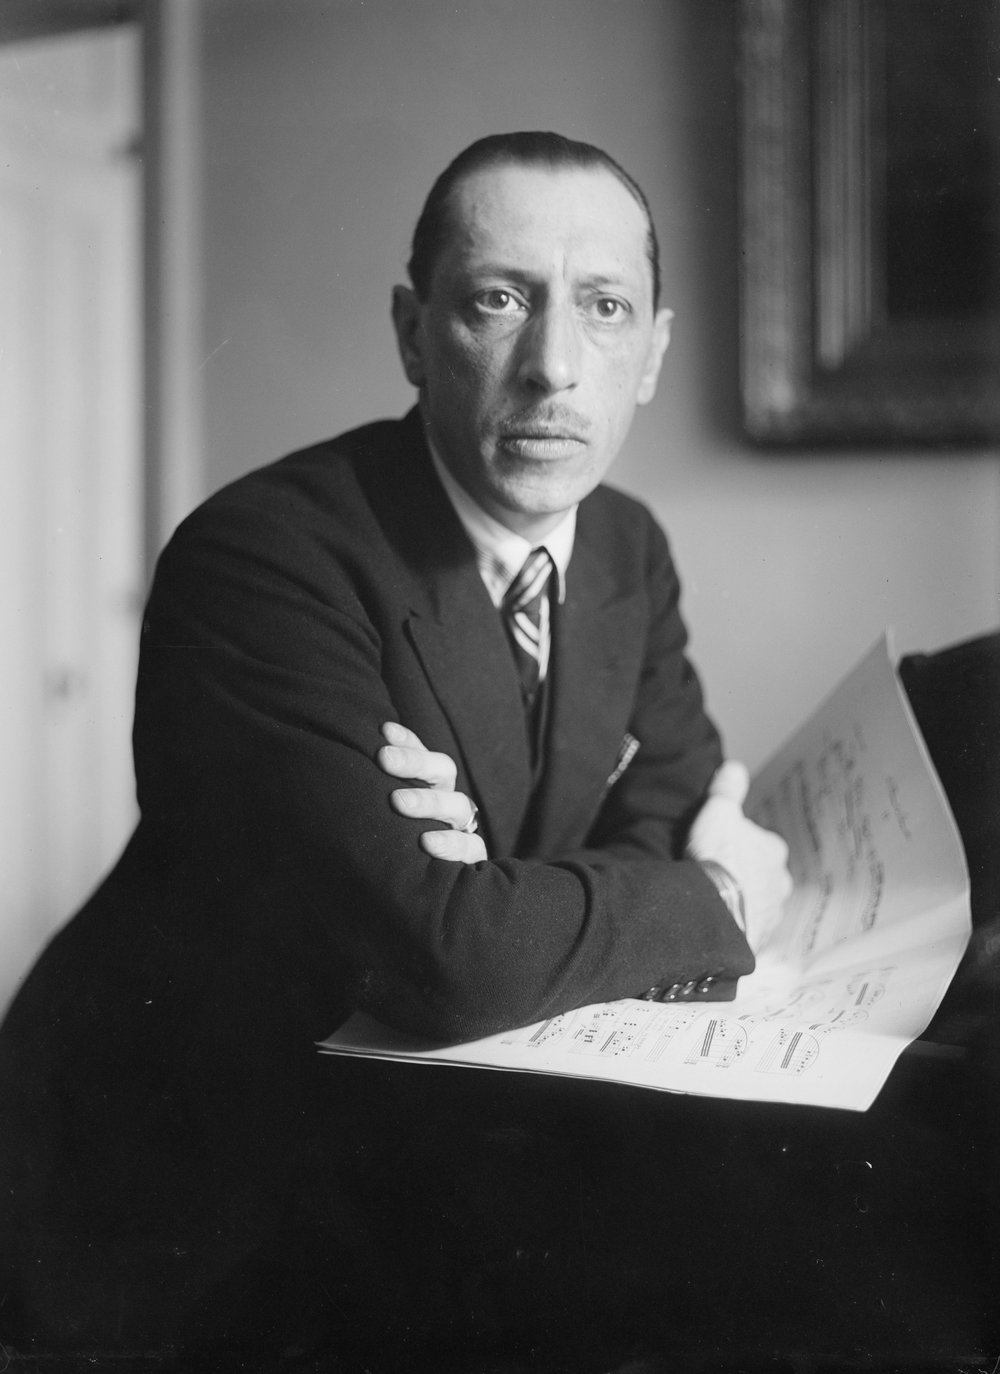 Stravinsky in Black & White -